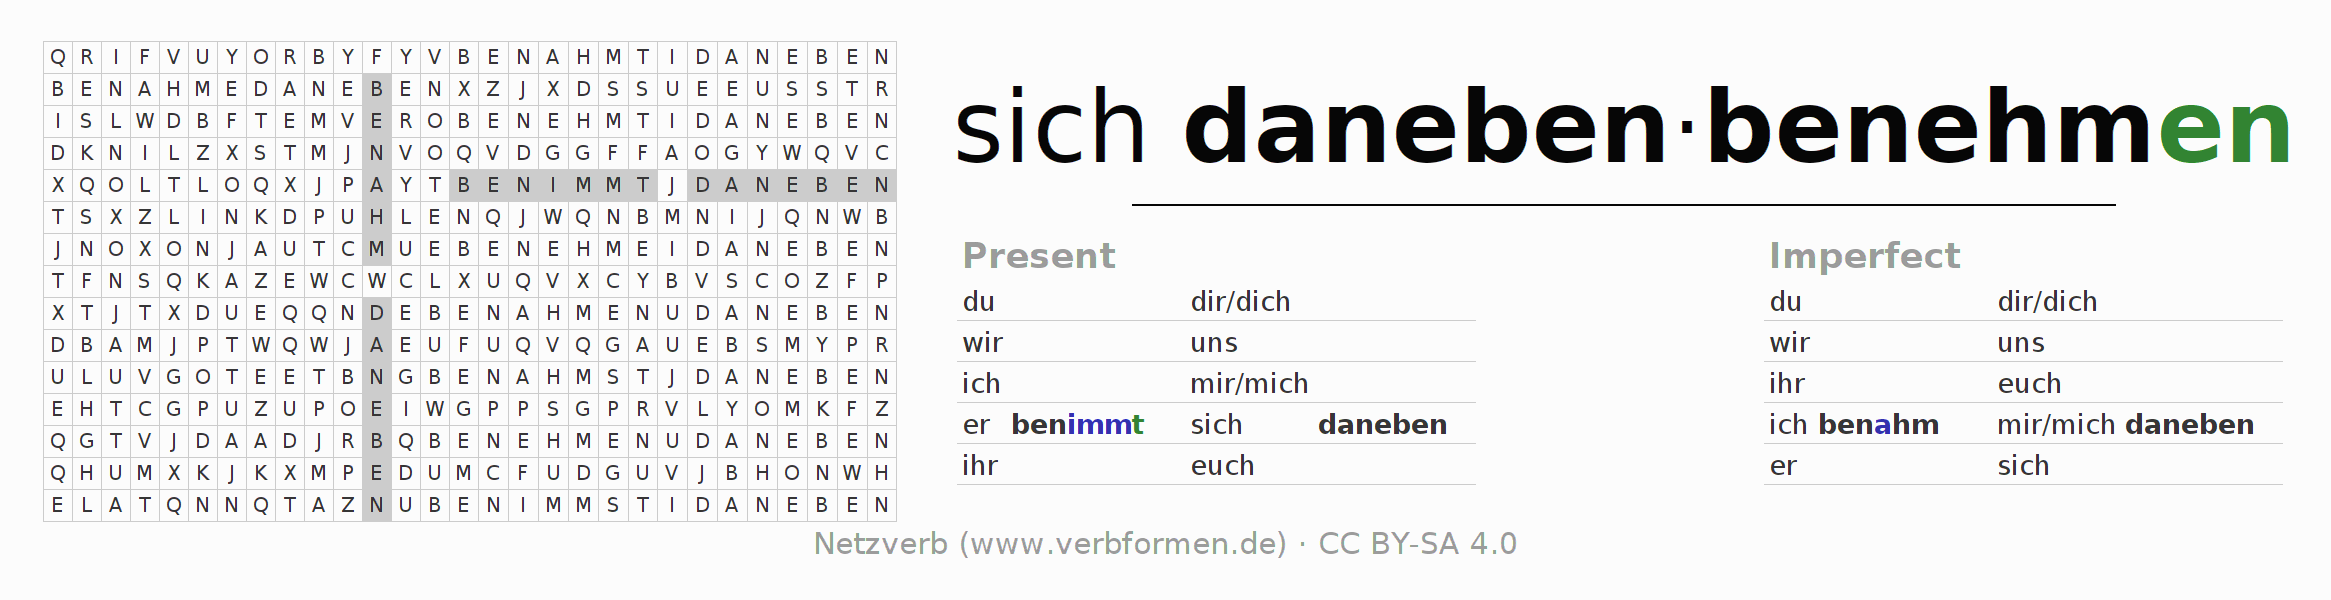 Word search puzzle for the conjugation of the verb sich danebenbenehmen